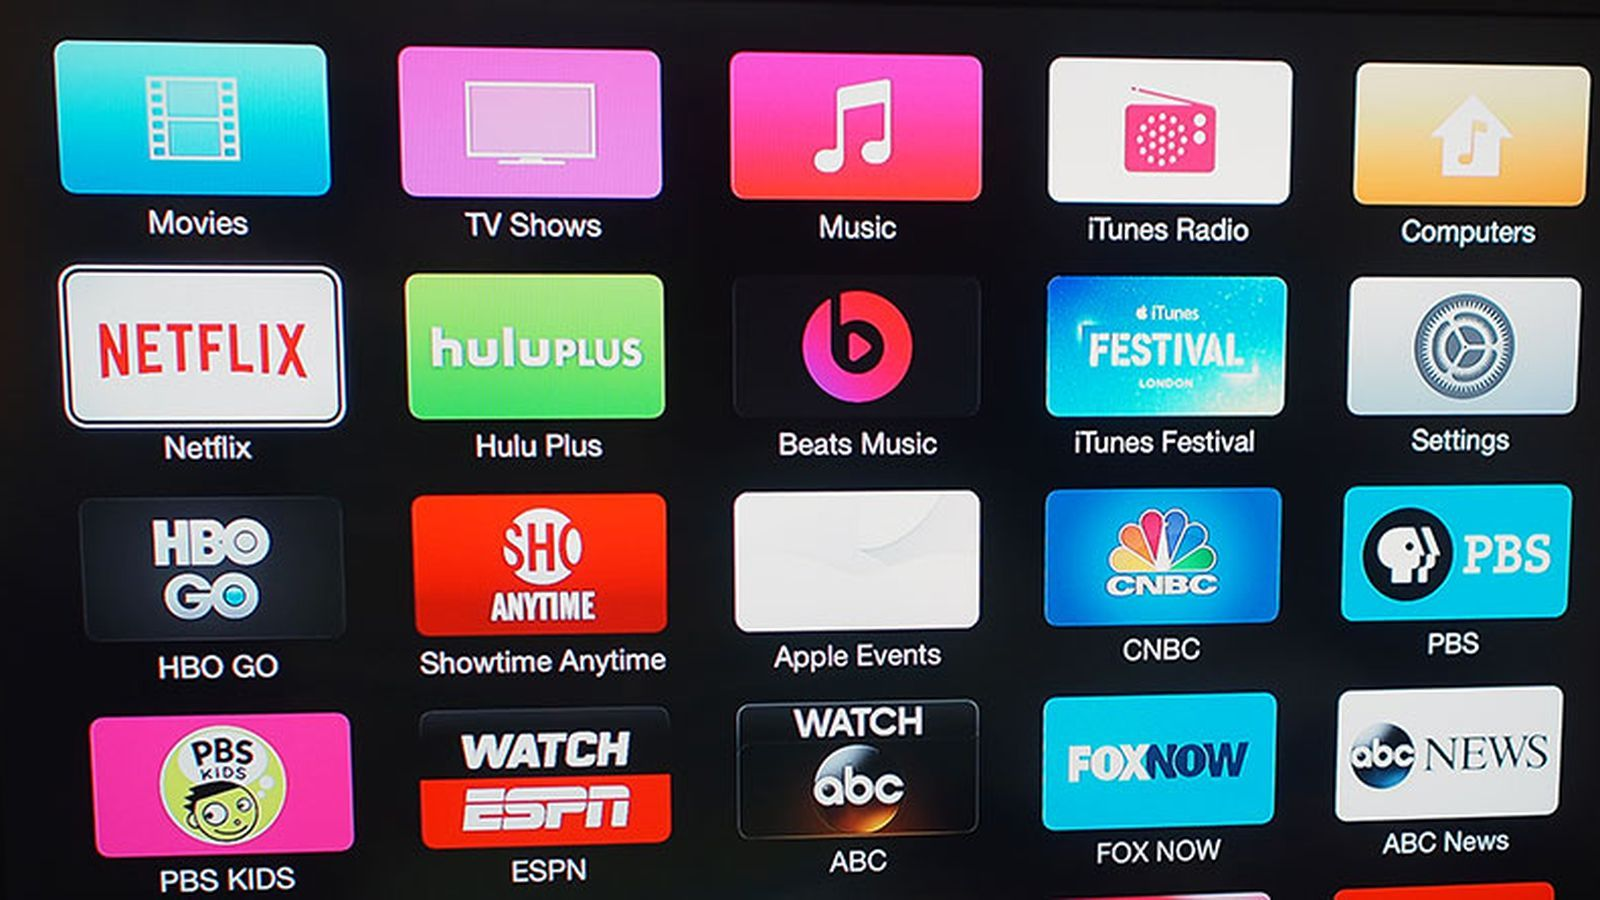 Apple's TV show is about driving people back to its apps